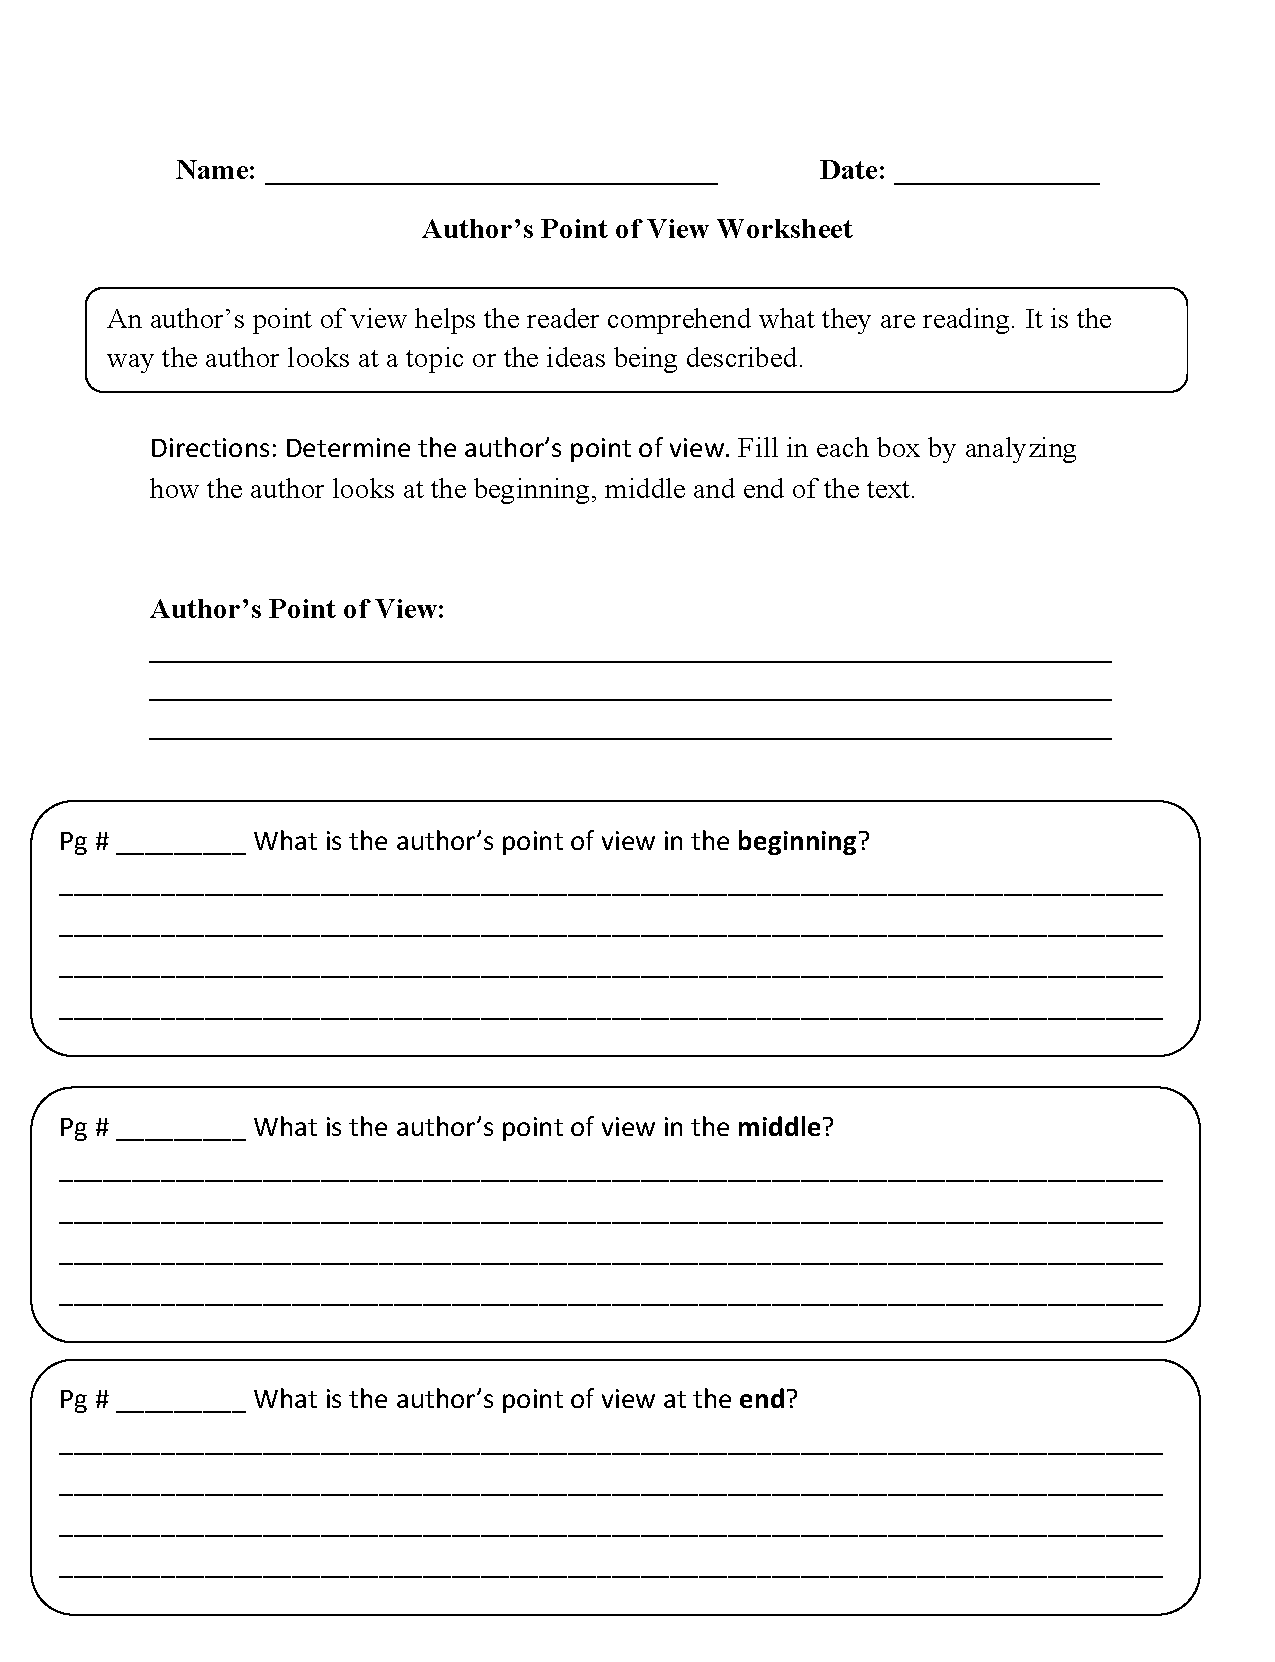 Weirdmailus  Unique Englishlinxcom  Point Of View Worksheets With Goodlooking Point Of View Worksheets With Delectable Hard Balancing Equations Worksheet Also English Printable Worksheets In Addition Beginning Letter Worksheets And X Multiplication Worksheets As Well As D Nealian Handwriting Worksheet Maker Additionally Kindergarten Worksheets Printables From Englishlinxcom With Weirdmailus  Goodlooking Englishlinxcom  Point Of View Worksheets With Delectable Point Of View Worksheets And Unique Hard Balancing Equations Worksheet Also English Printable Worksheets In Addition Beginning Letter Worksheets From Englishlinxcom